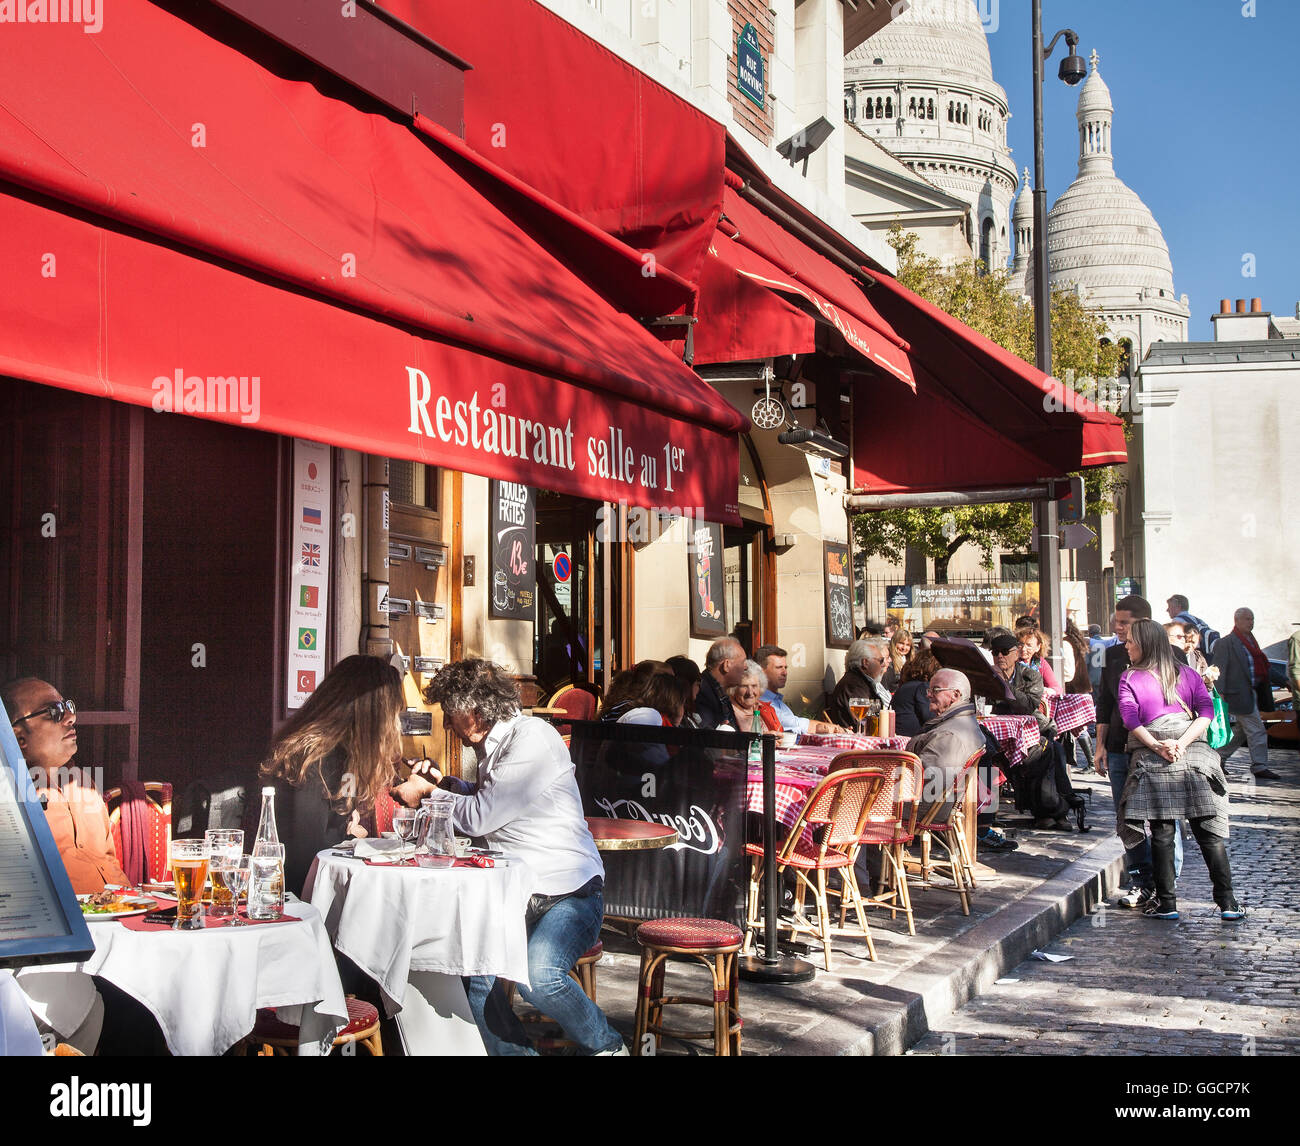 Cafe life in Paris at Montmartre - Stock Image